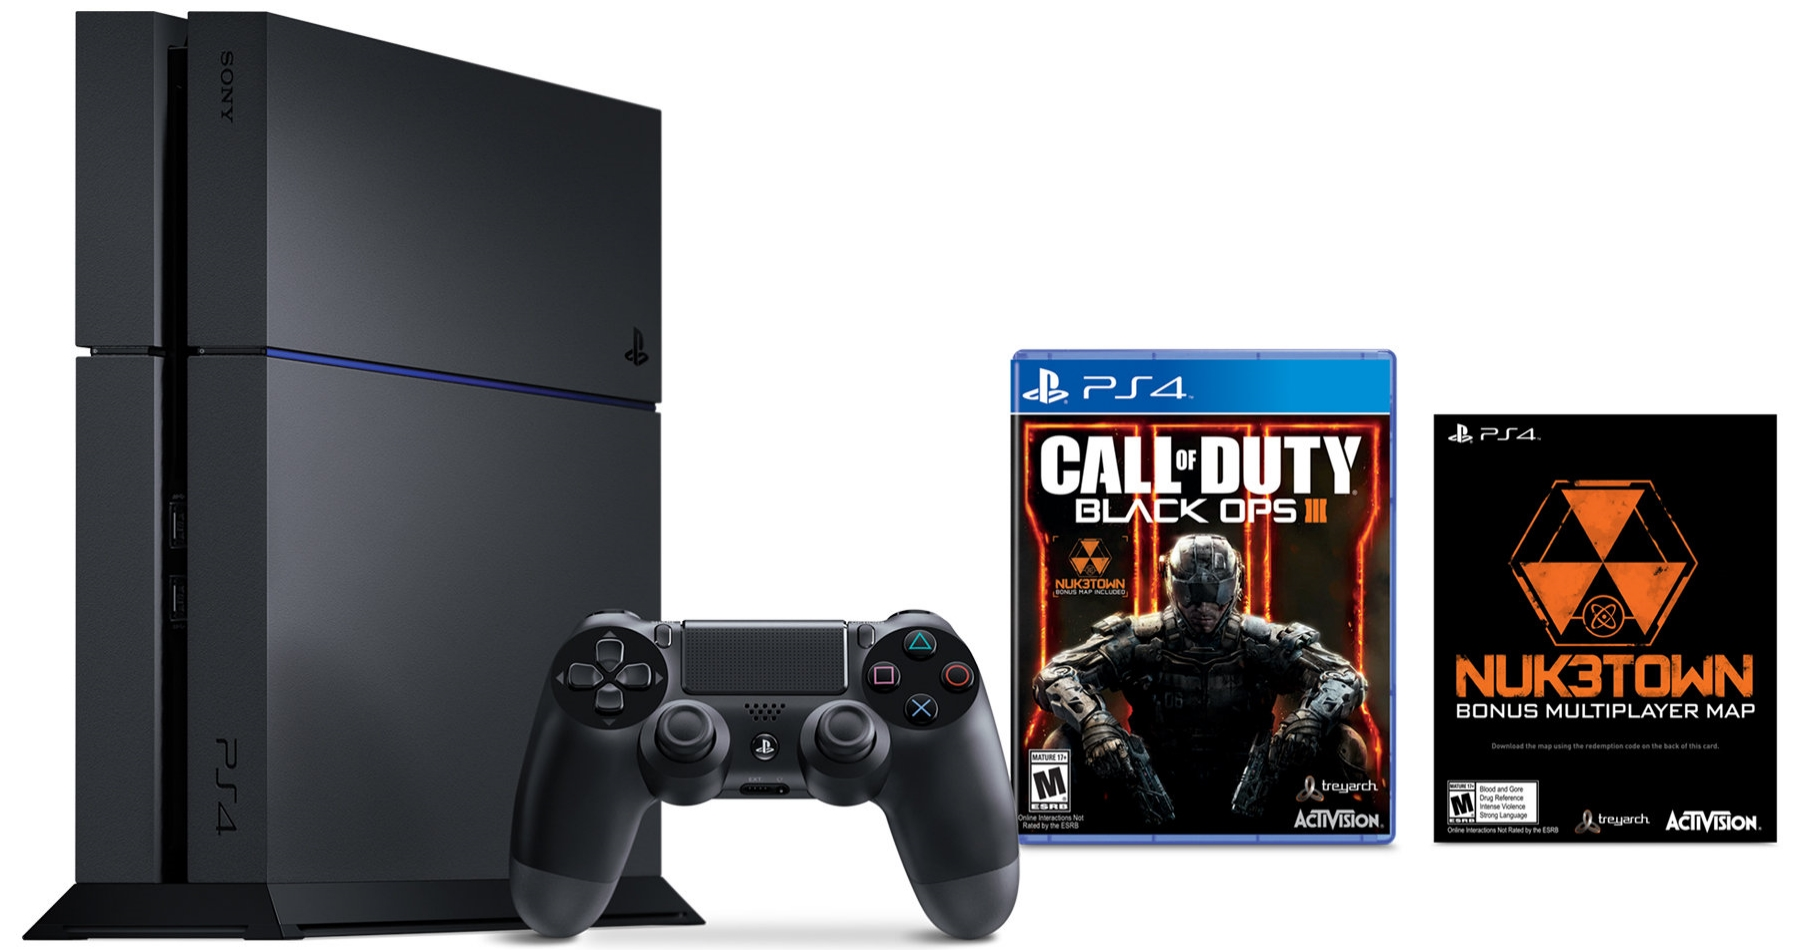 Ps4 Gets Another Call Of Duty Black Ops 3 Bundle For 350 Vg247